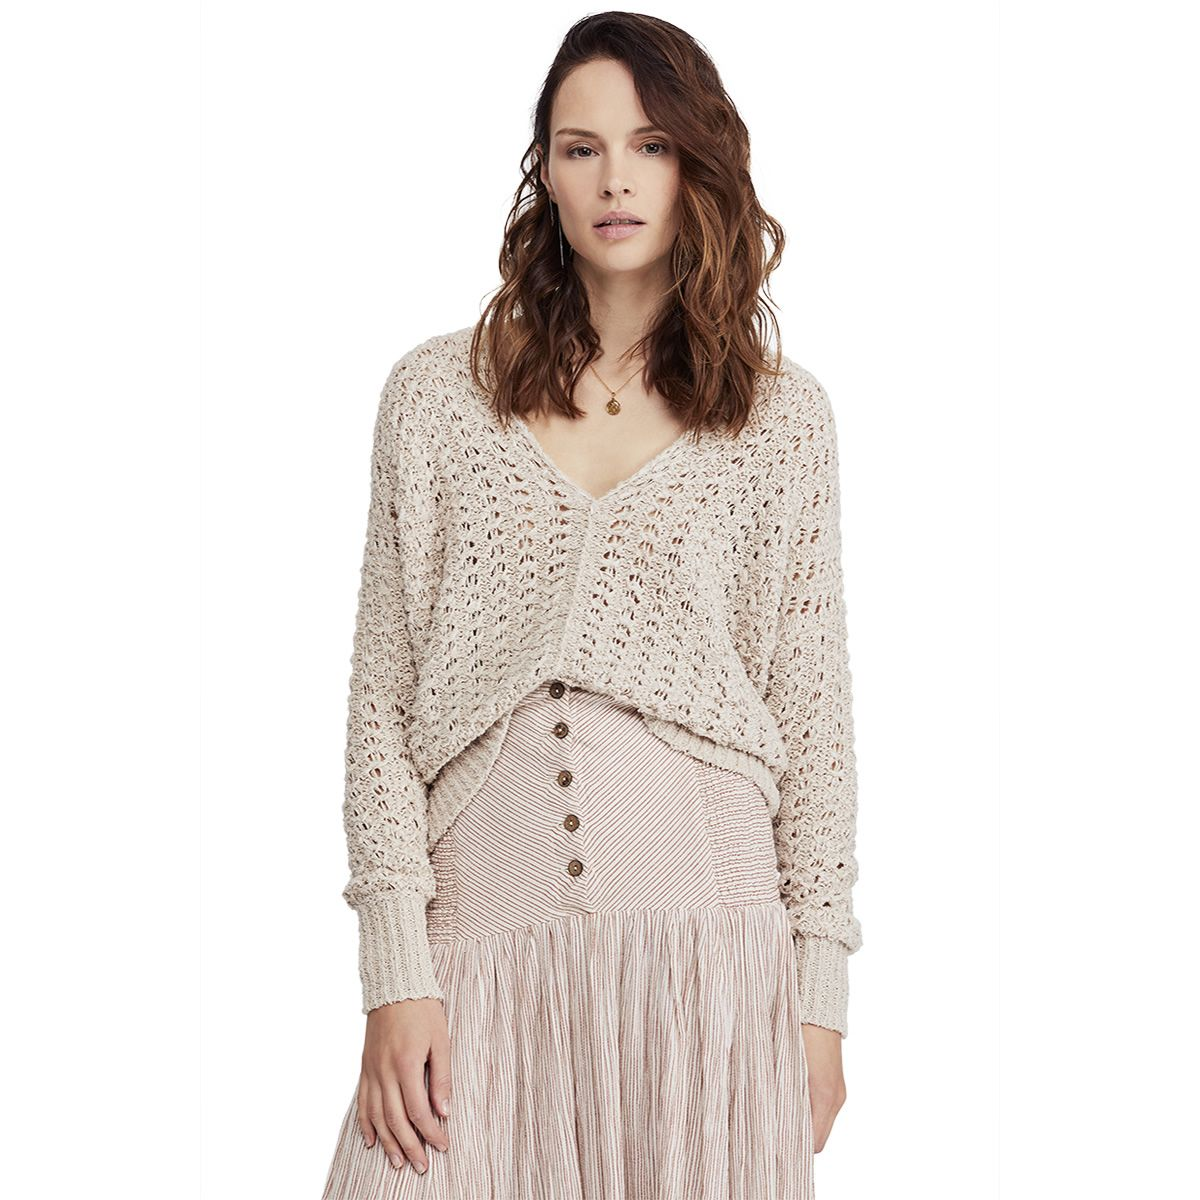 d42270ea6 Free People Clothing - Womens Apparel - Macy s